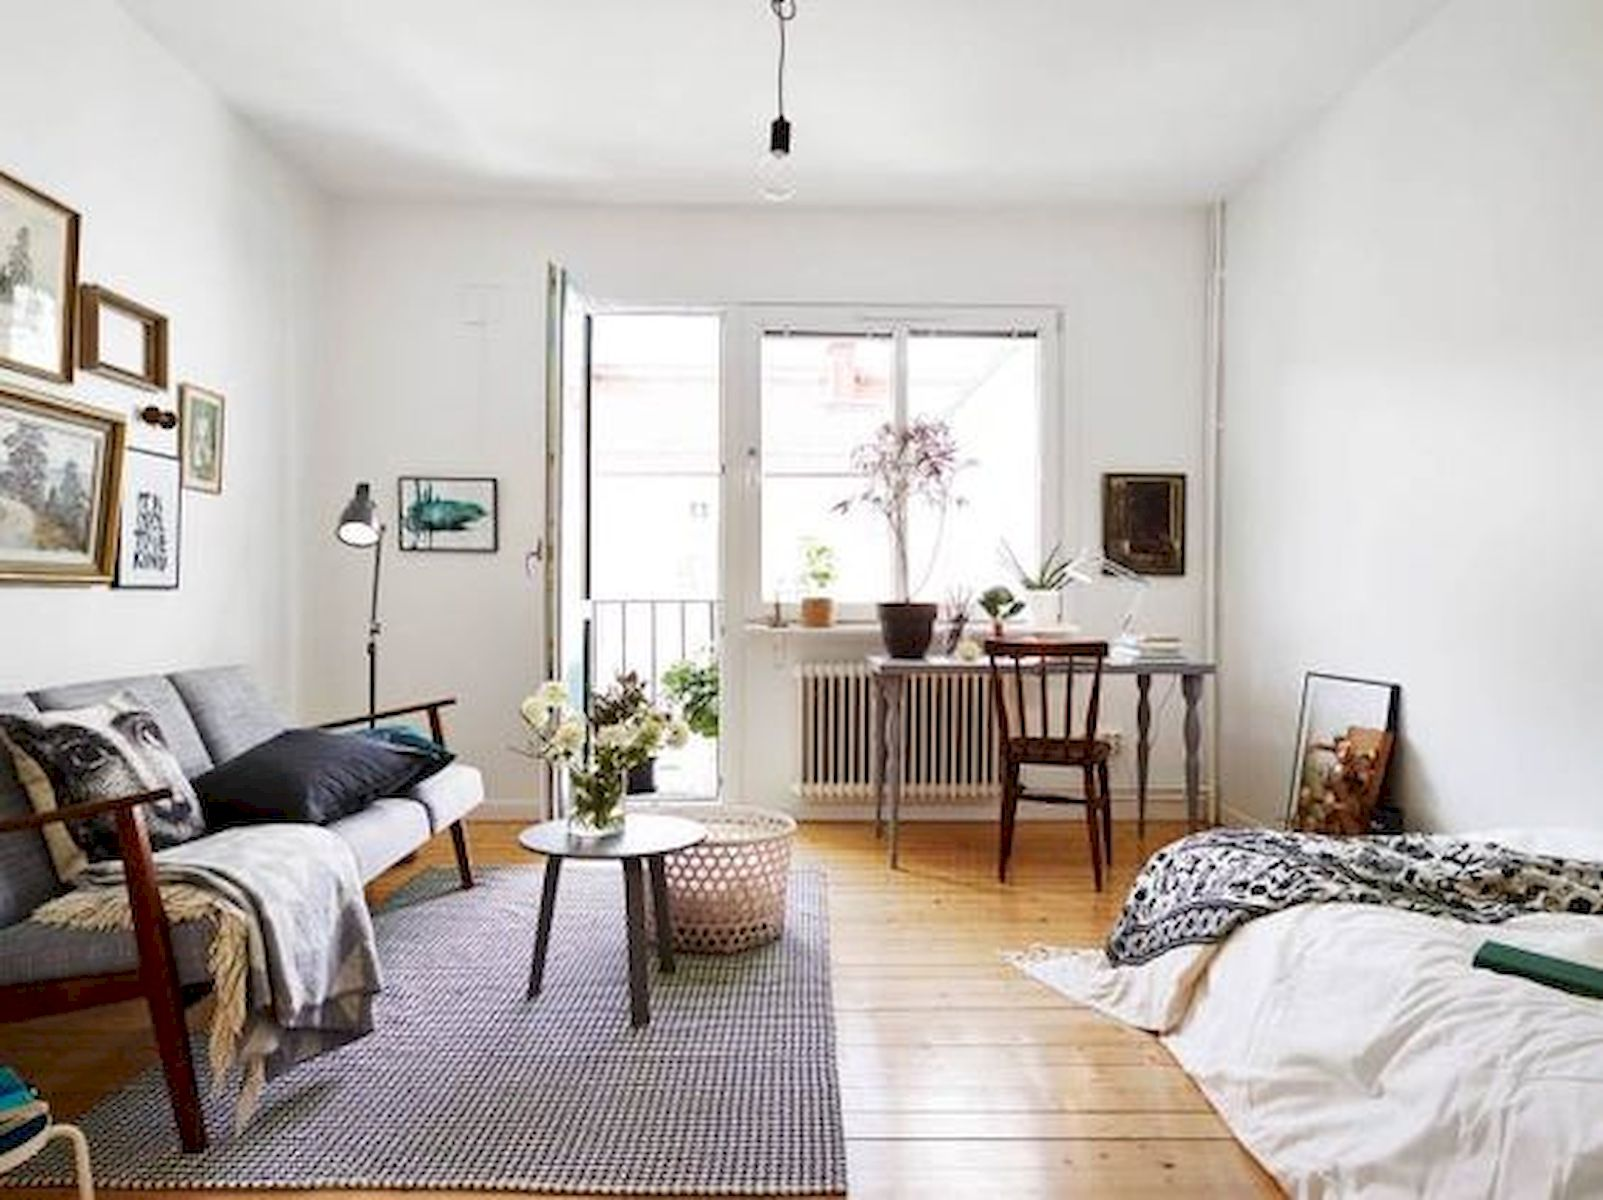 53 Best Minimalist Studio Apartment Small Spaces Decor Ideas 8 Ideaboz